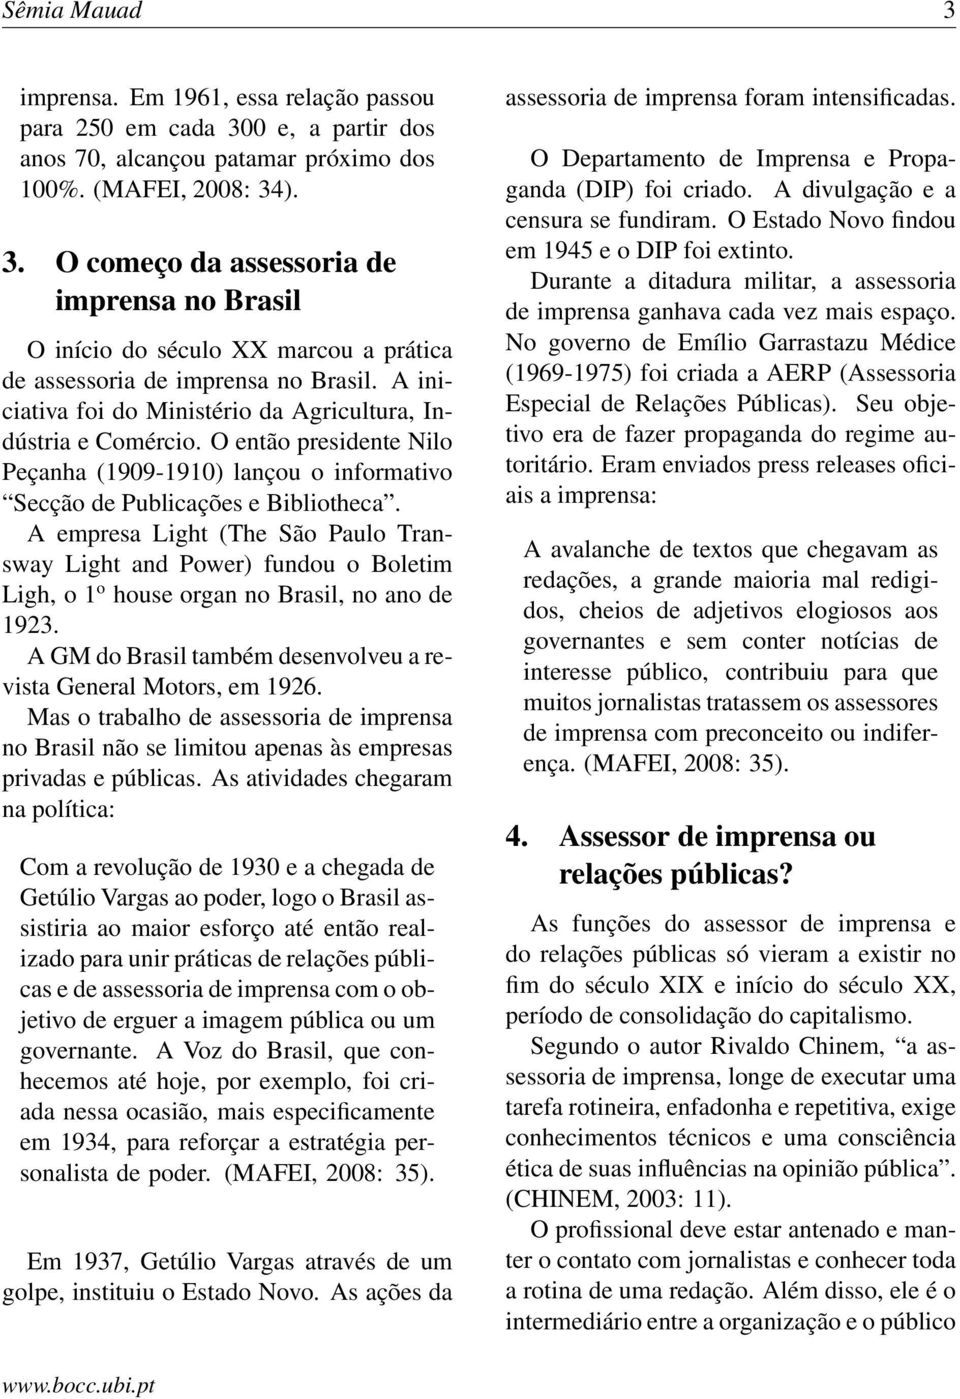 A empresa Light (The São Paulo Transway Light and Power) fundou o Boletim Ligh, o 1 o house organ no Brasil, no ano de 1923. A GM do Brasil também desenvolveu a revista General Motors, em 1926.